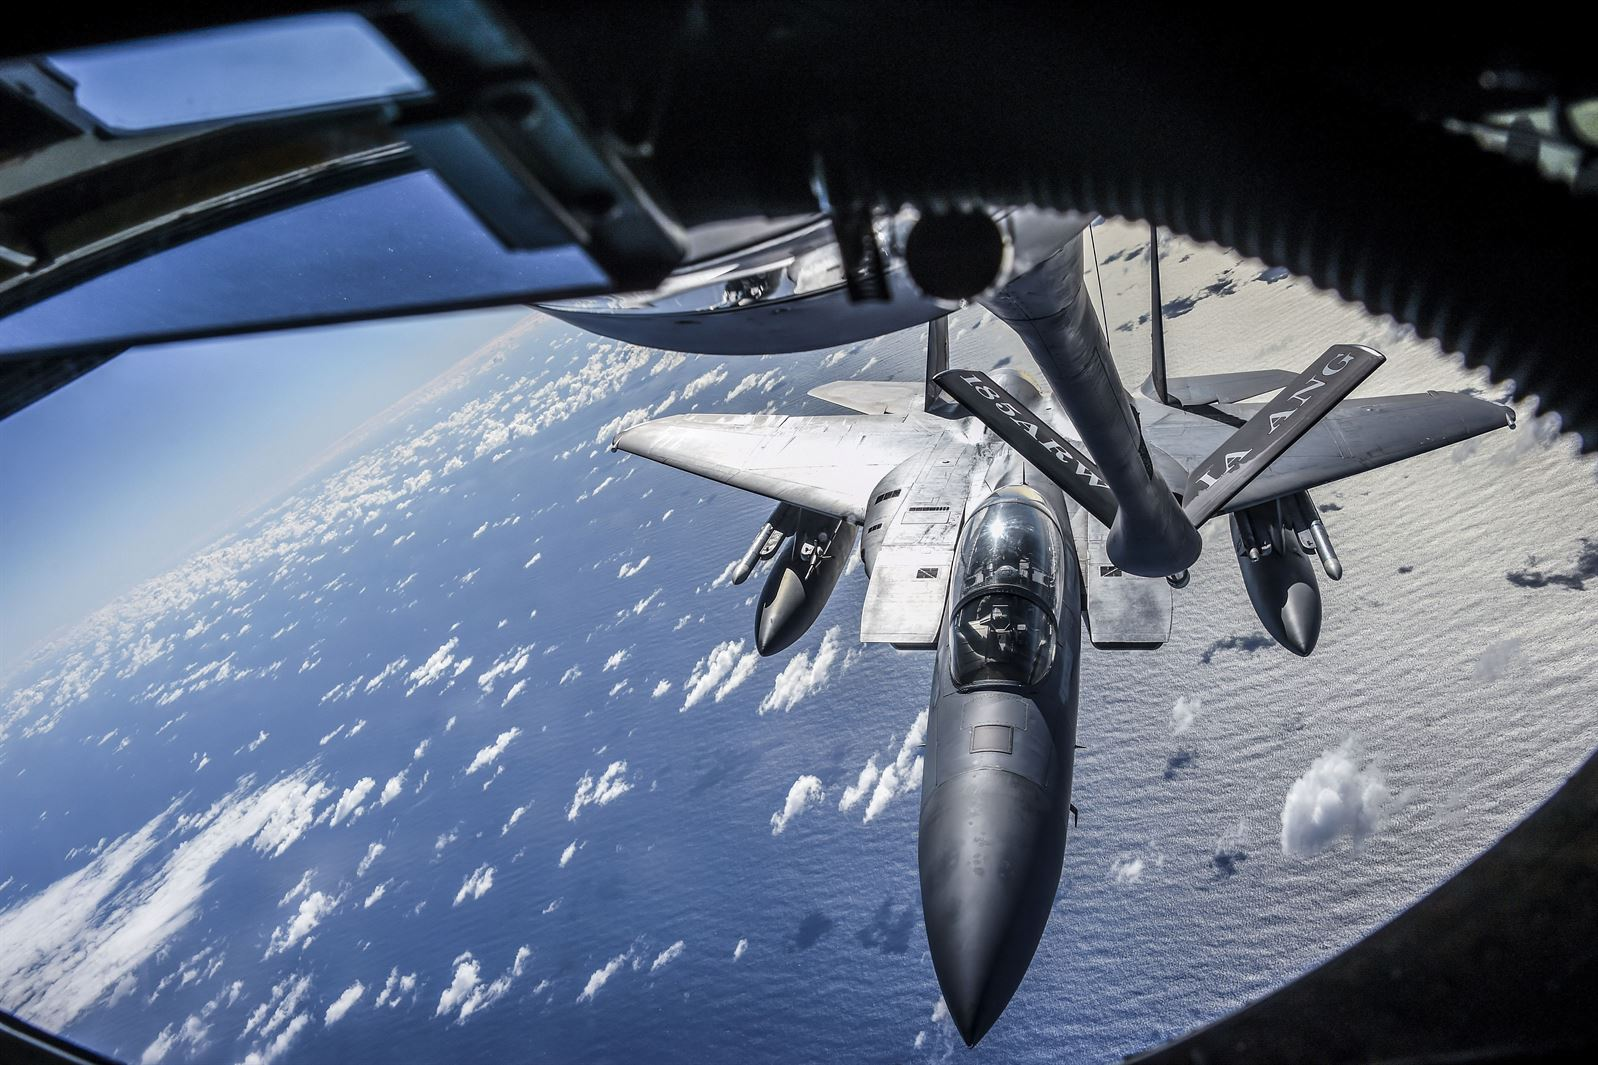 Jet refueling in the air